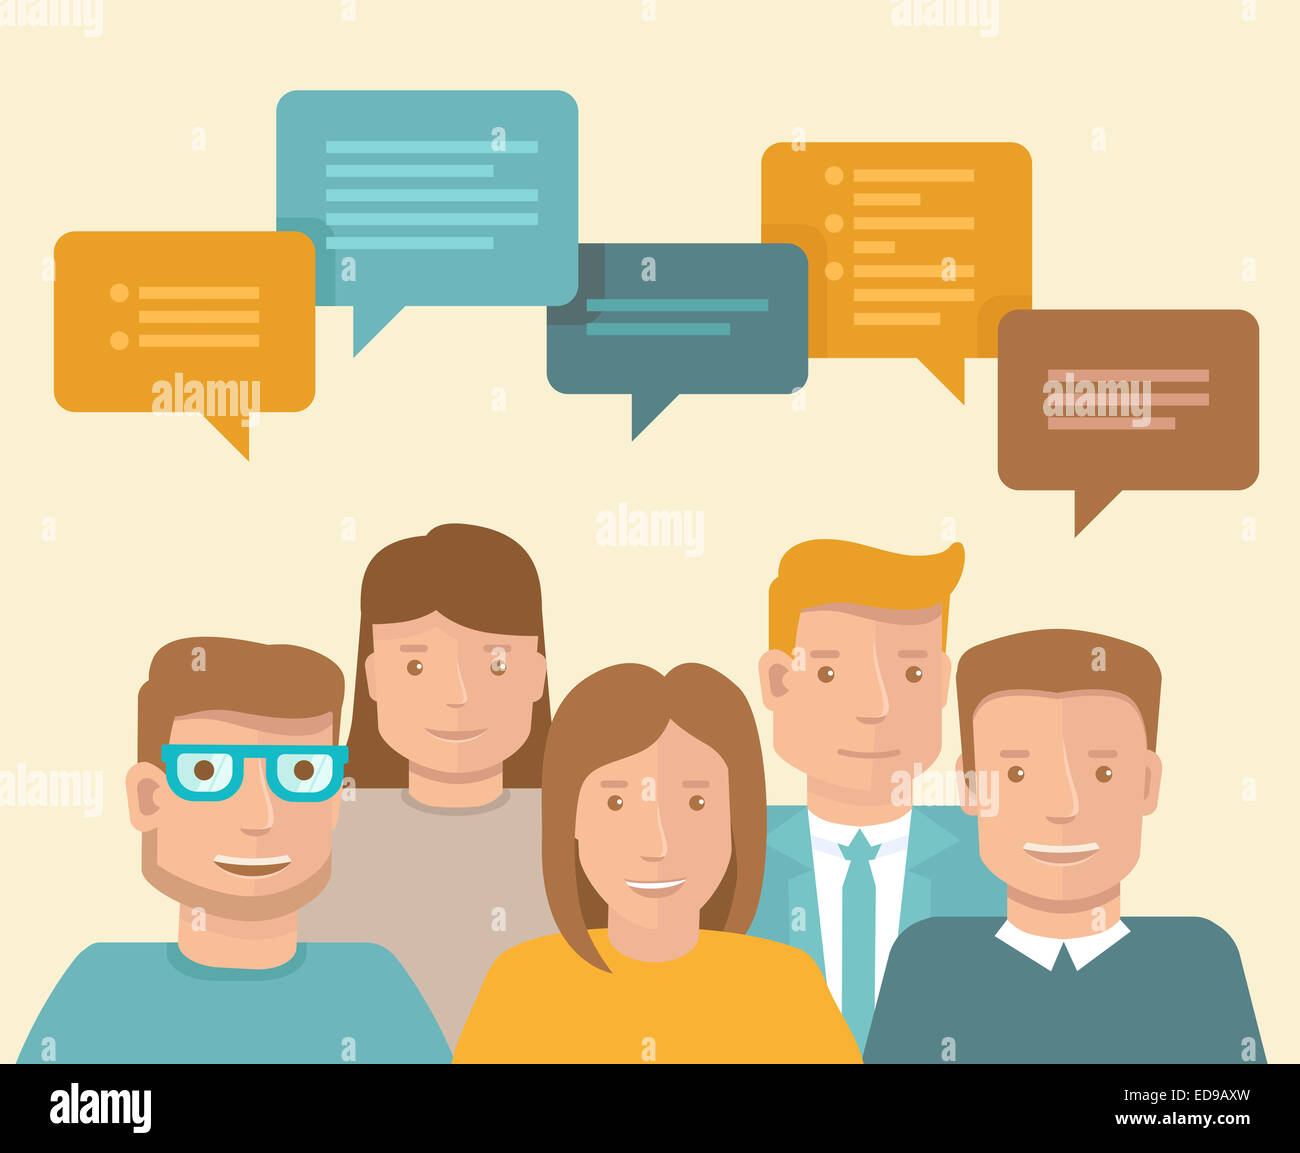 Flat concept - teamwork and brainstorming - business icons - Stock Image